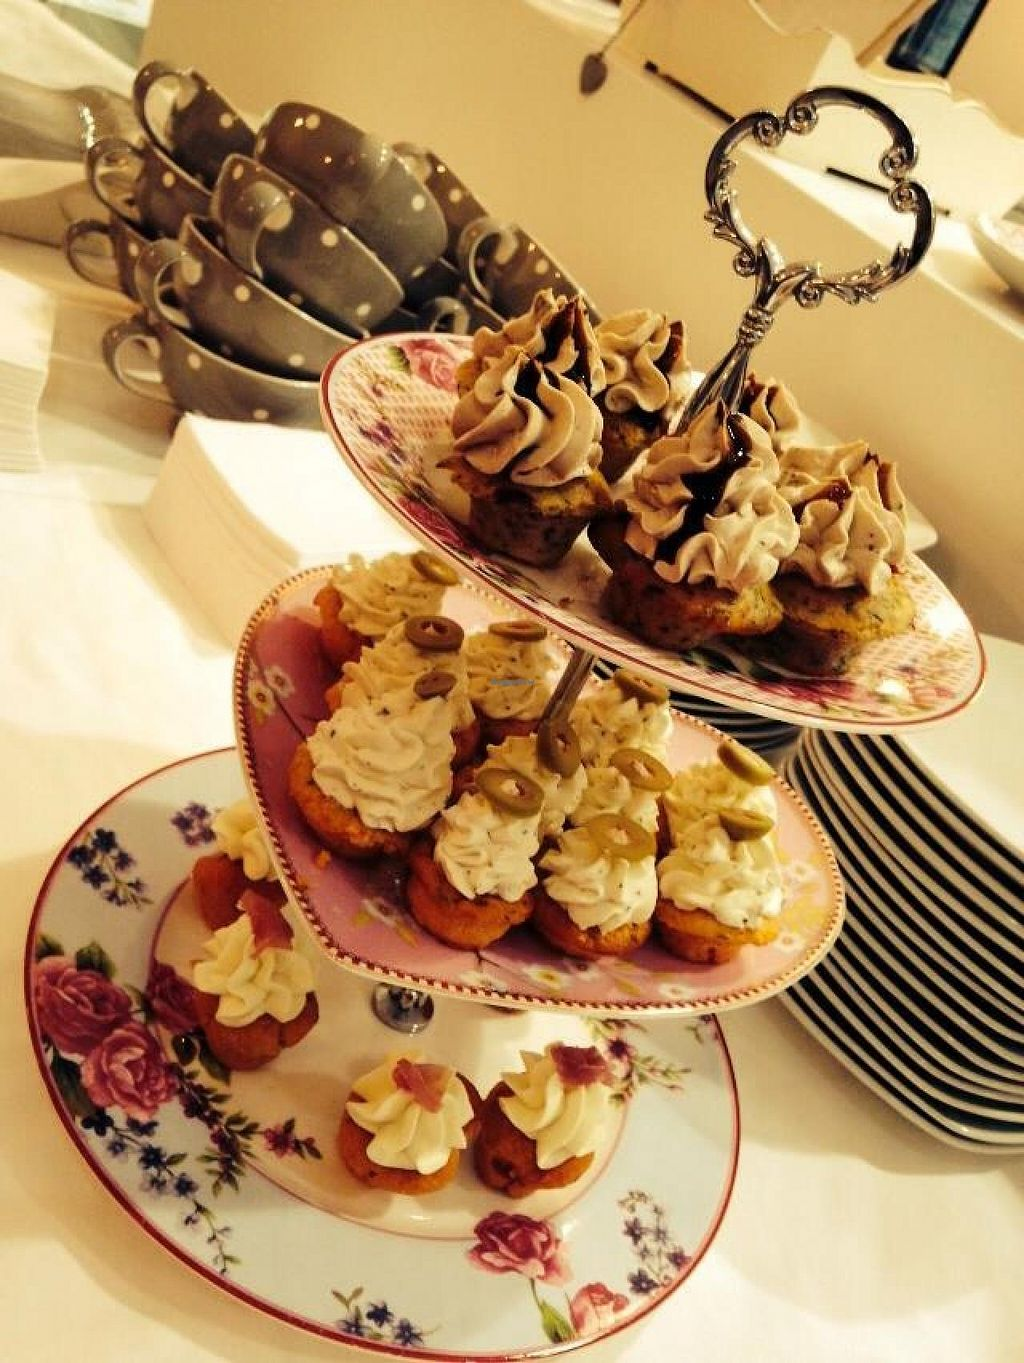 """Photo of CupCakes Wien  by <a href=""""/members/profile/community"""">community</a> <br/> CupCakes Wien <br/> February 9, 2014  - <a href='/contact/abuse/image/44714/63985'>Report</a>"""